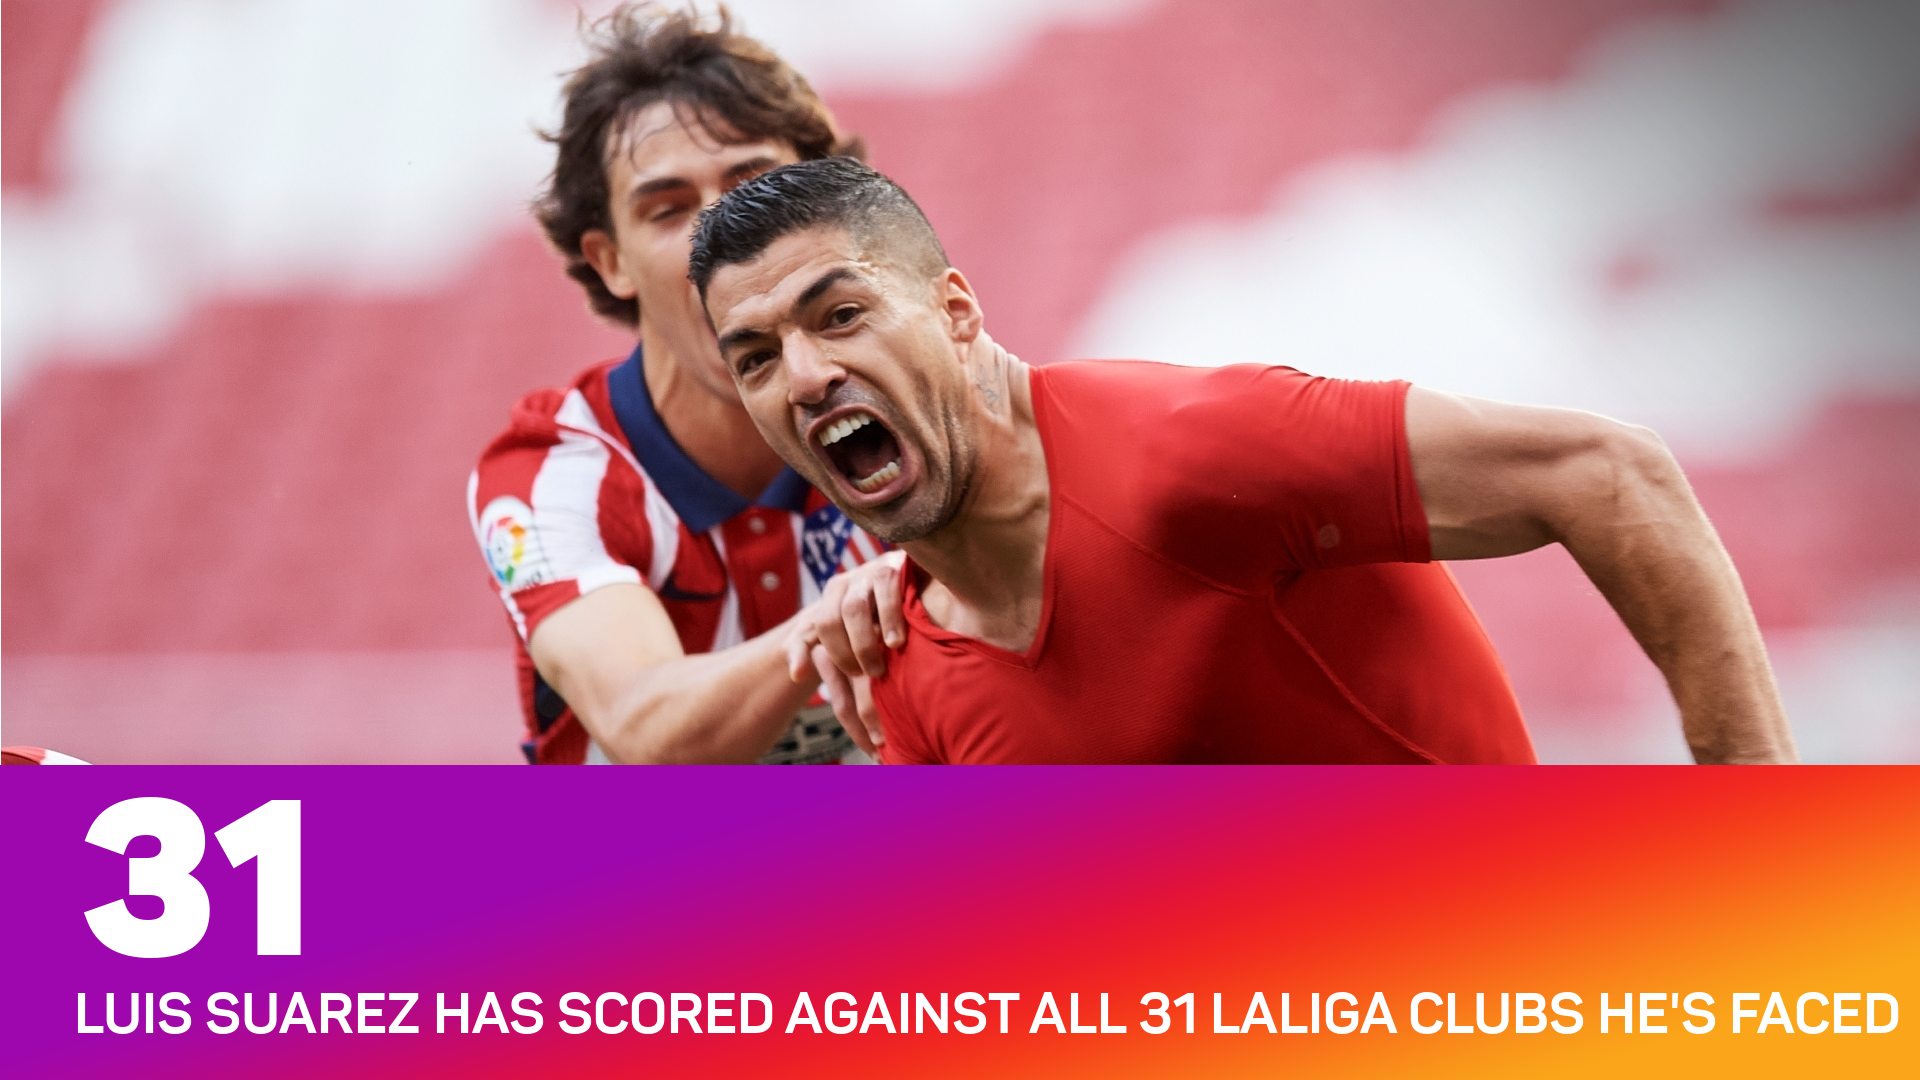 Luis Suarez has scored against all 31 LaLiga clubs he has faced